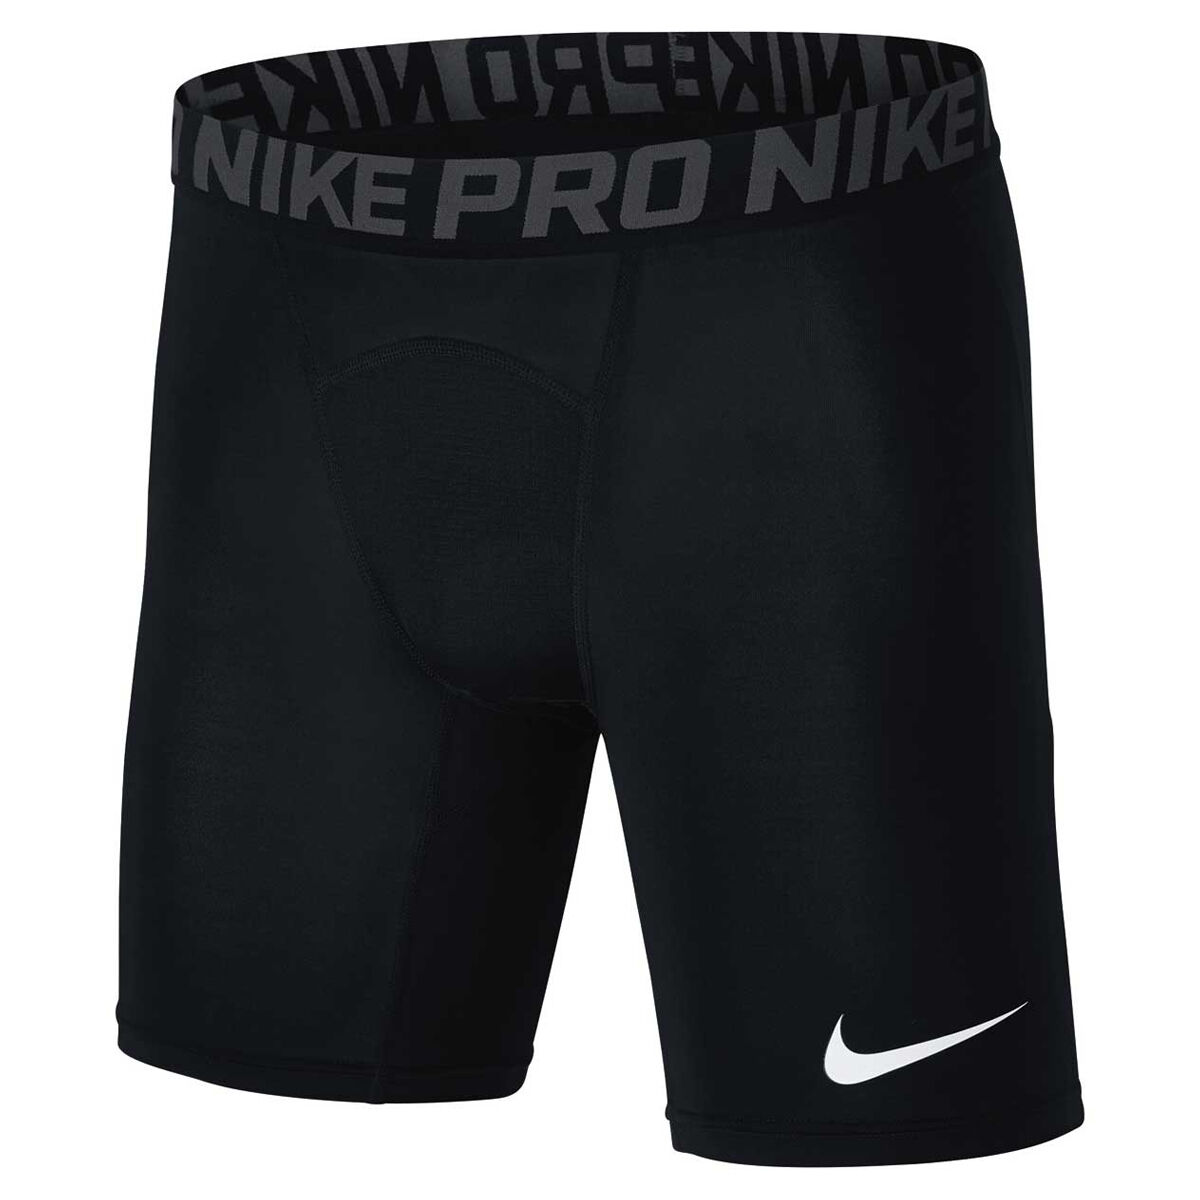 Buy How to nike wear compression shorts picture trends